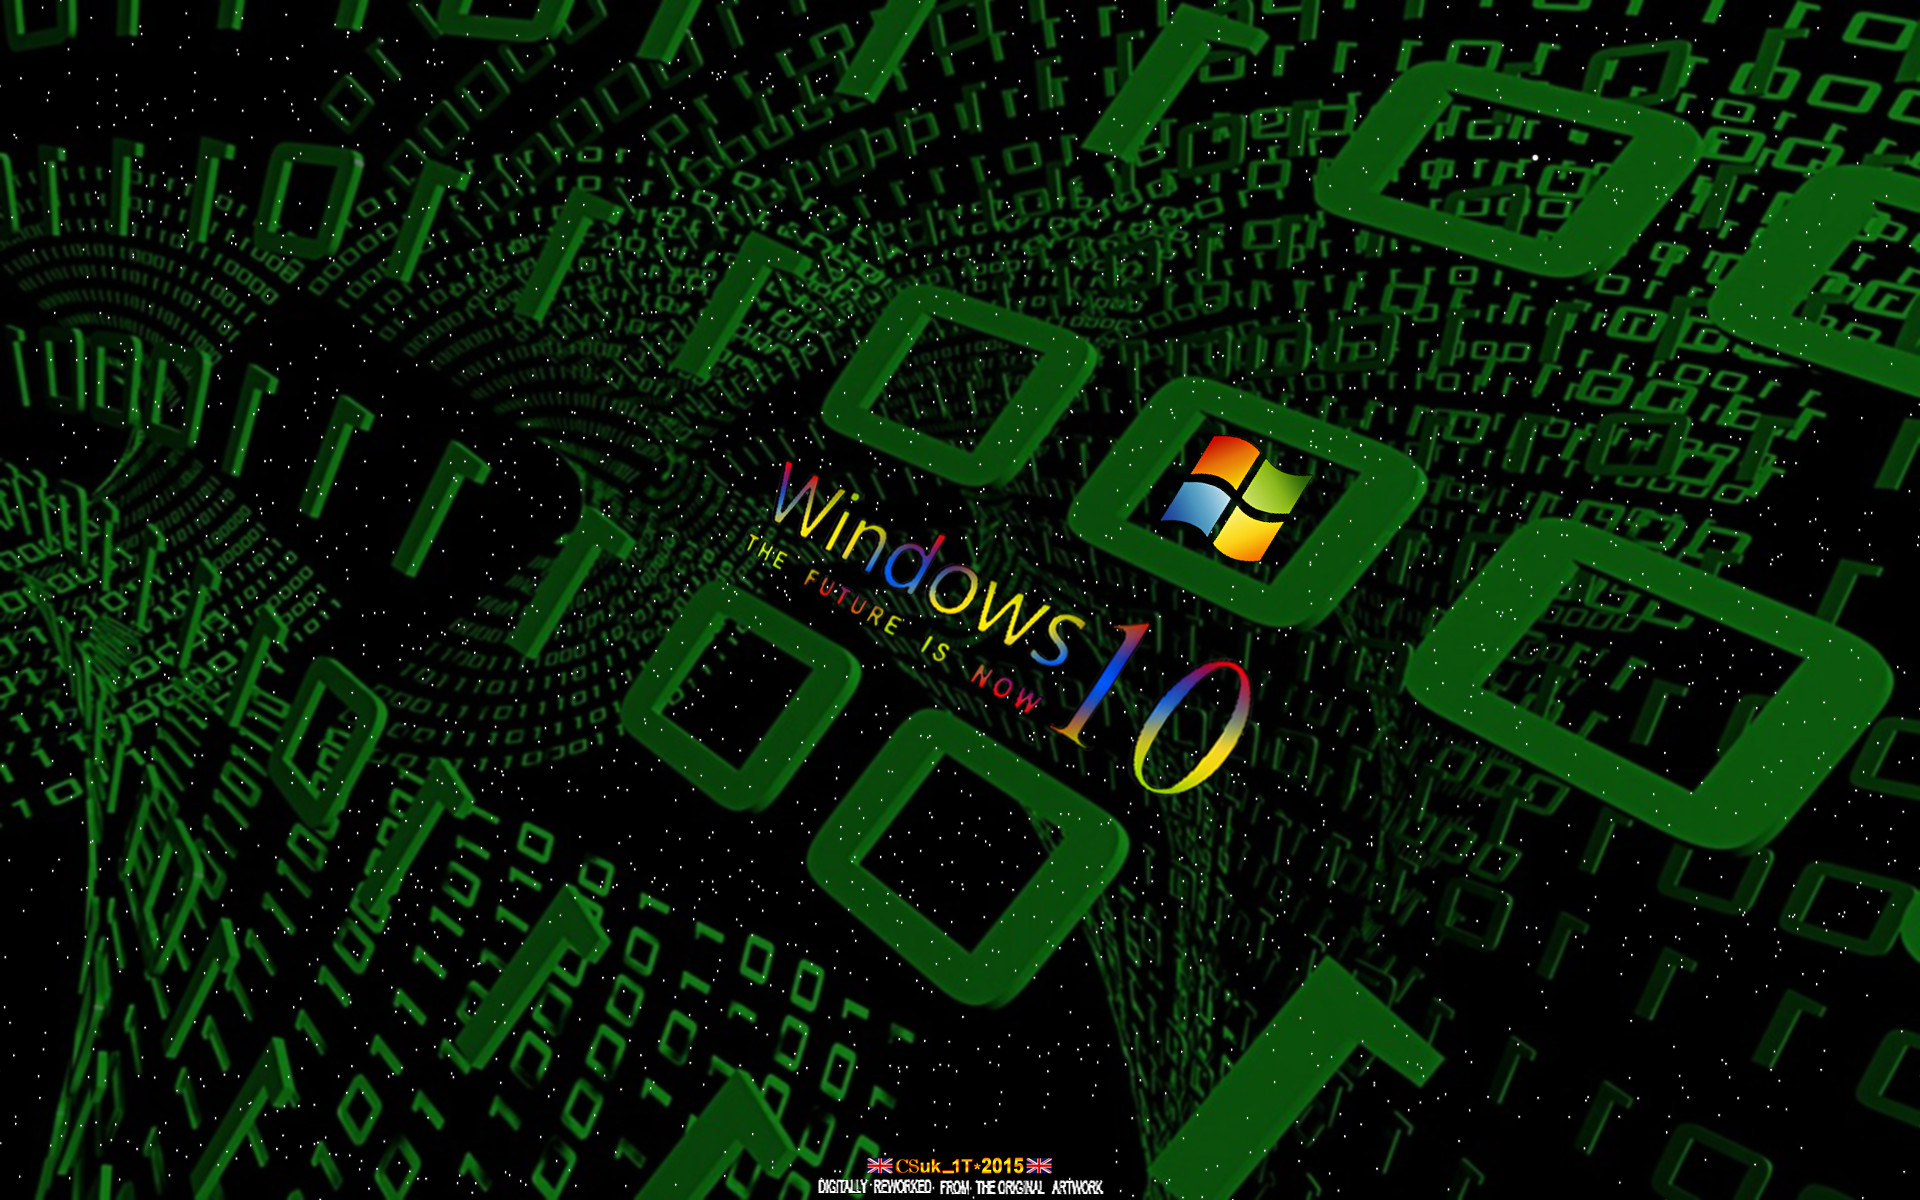 … WINDOWS 10 MATRIX by CSuk-1T